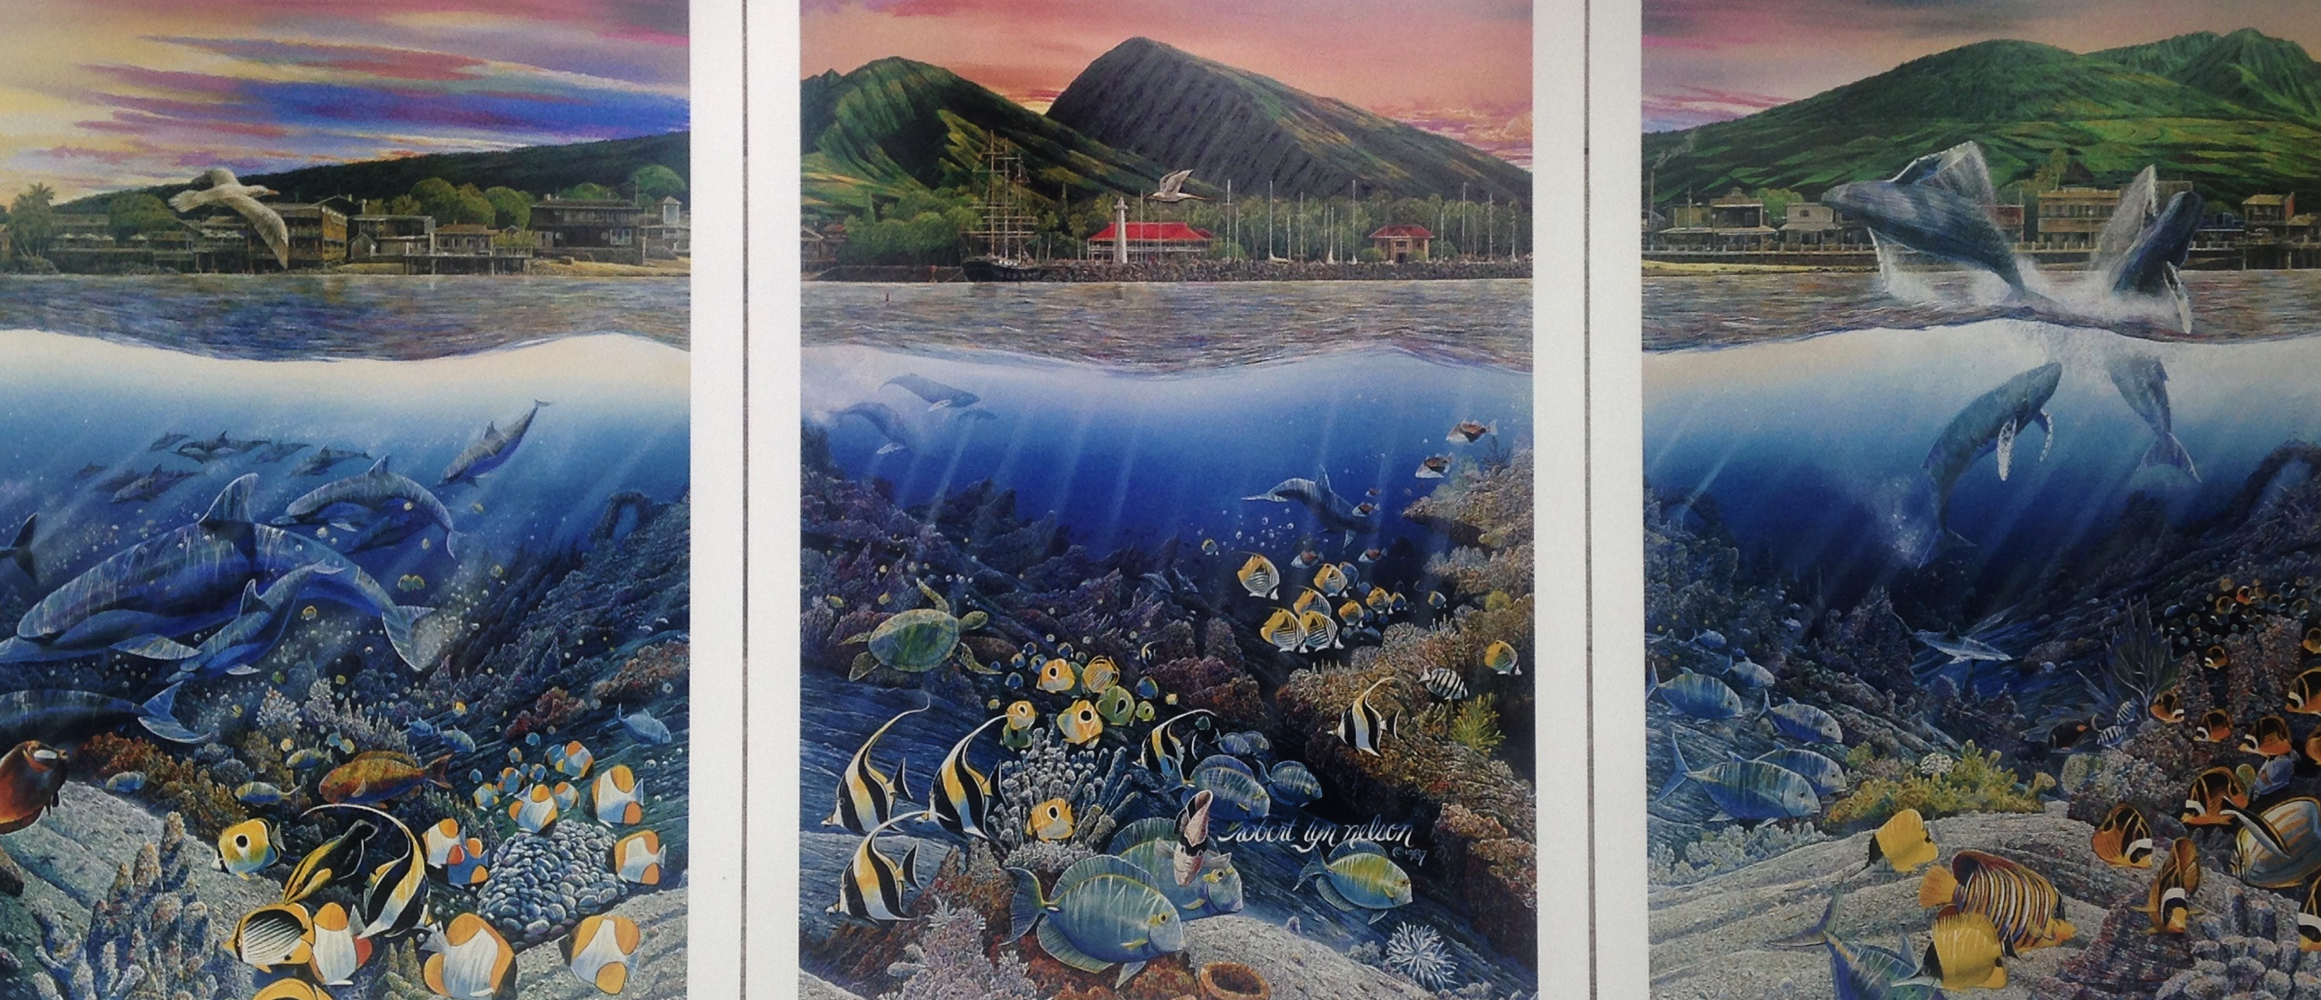 Lahaina Rhythms: Land And Sea Triptych 1987